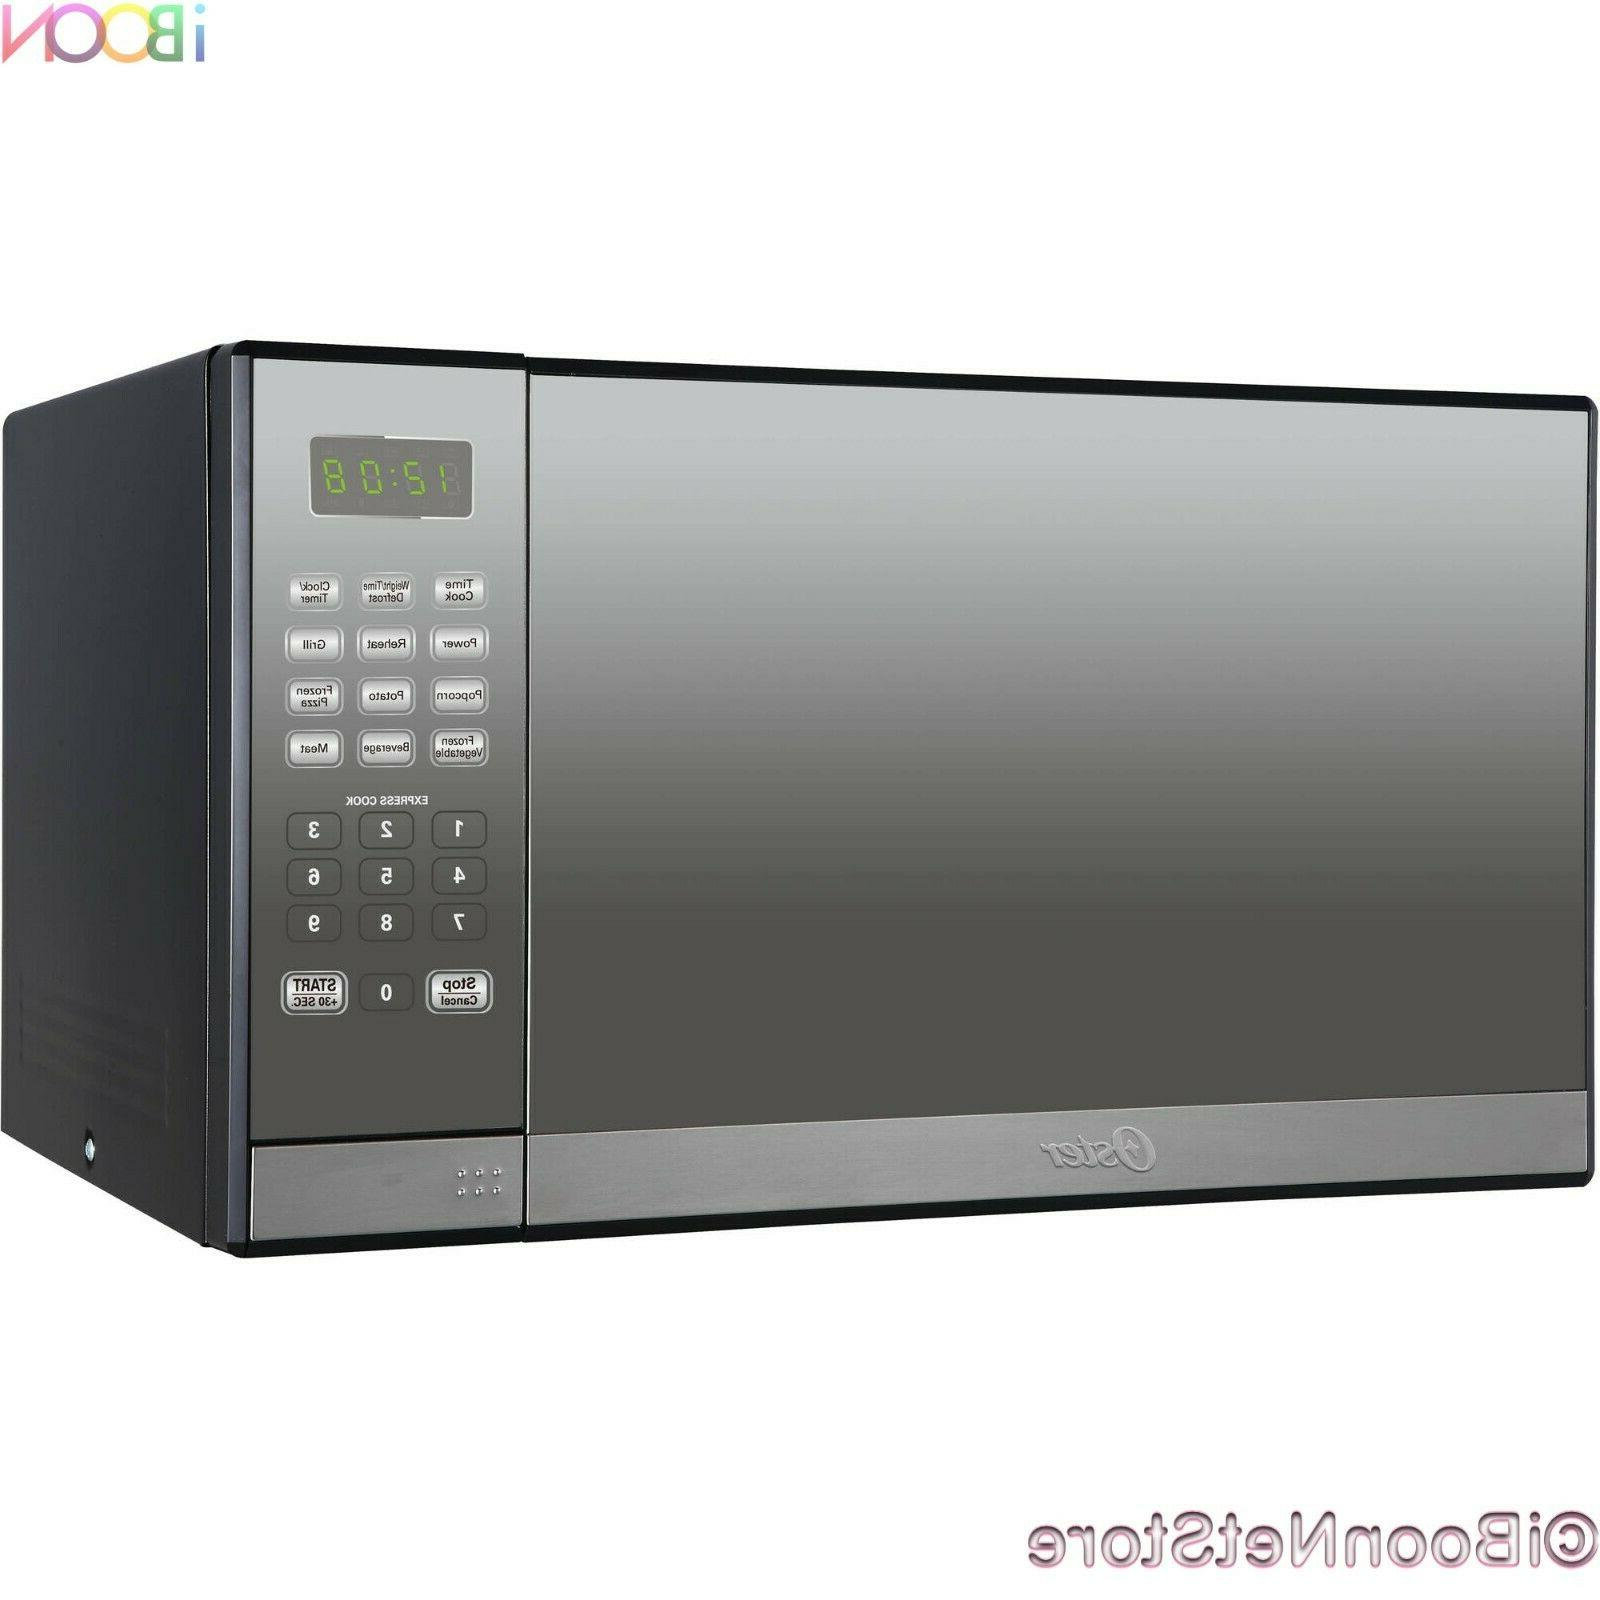 Oster Microwave Oven CounterTop Stainless Steel Mirror 1.3 ft